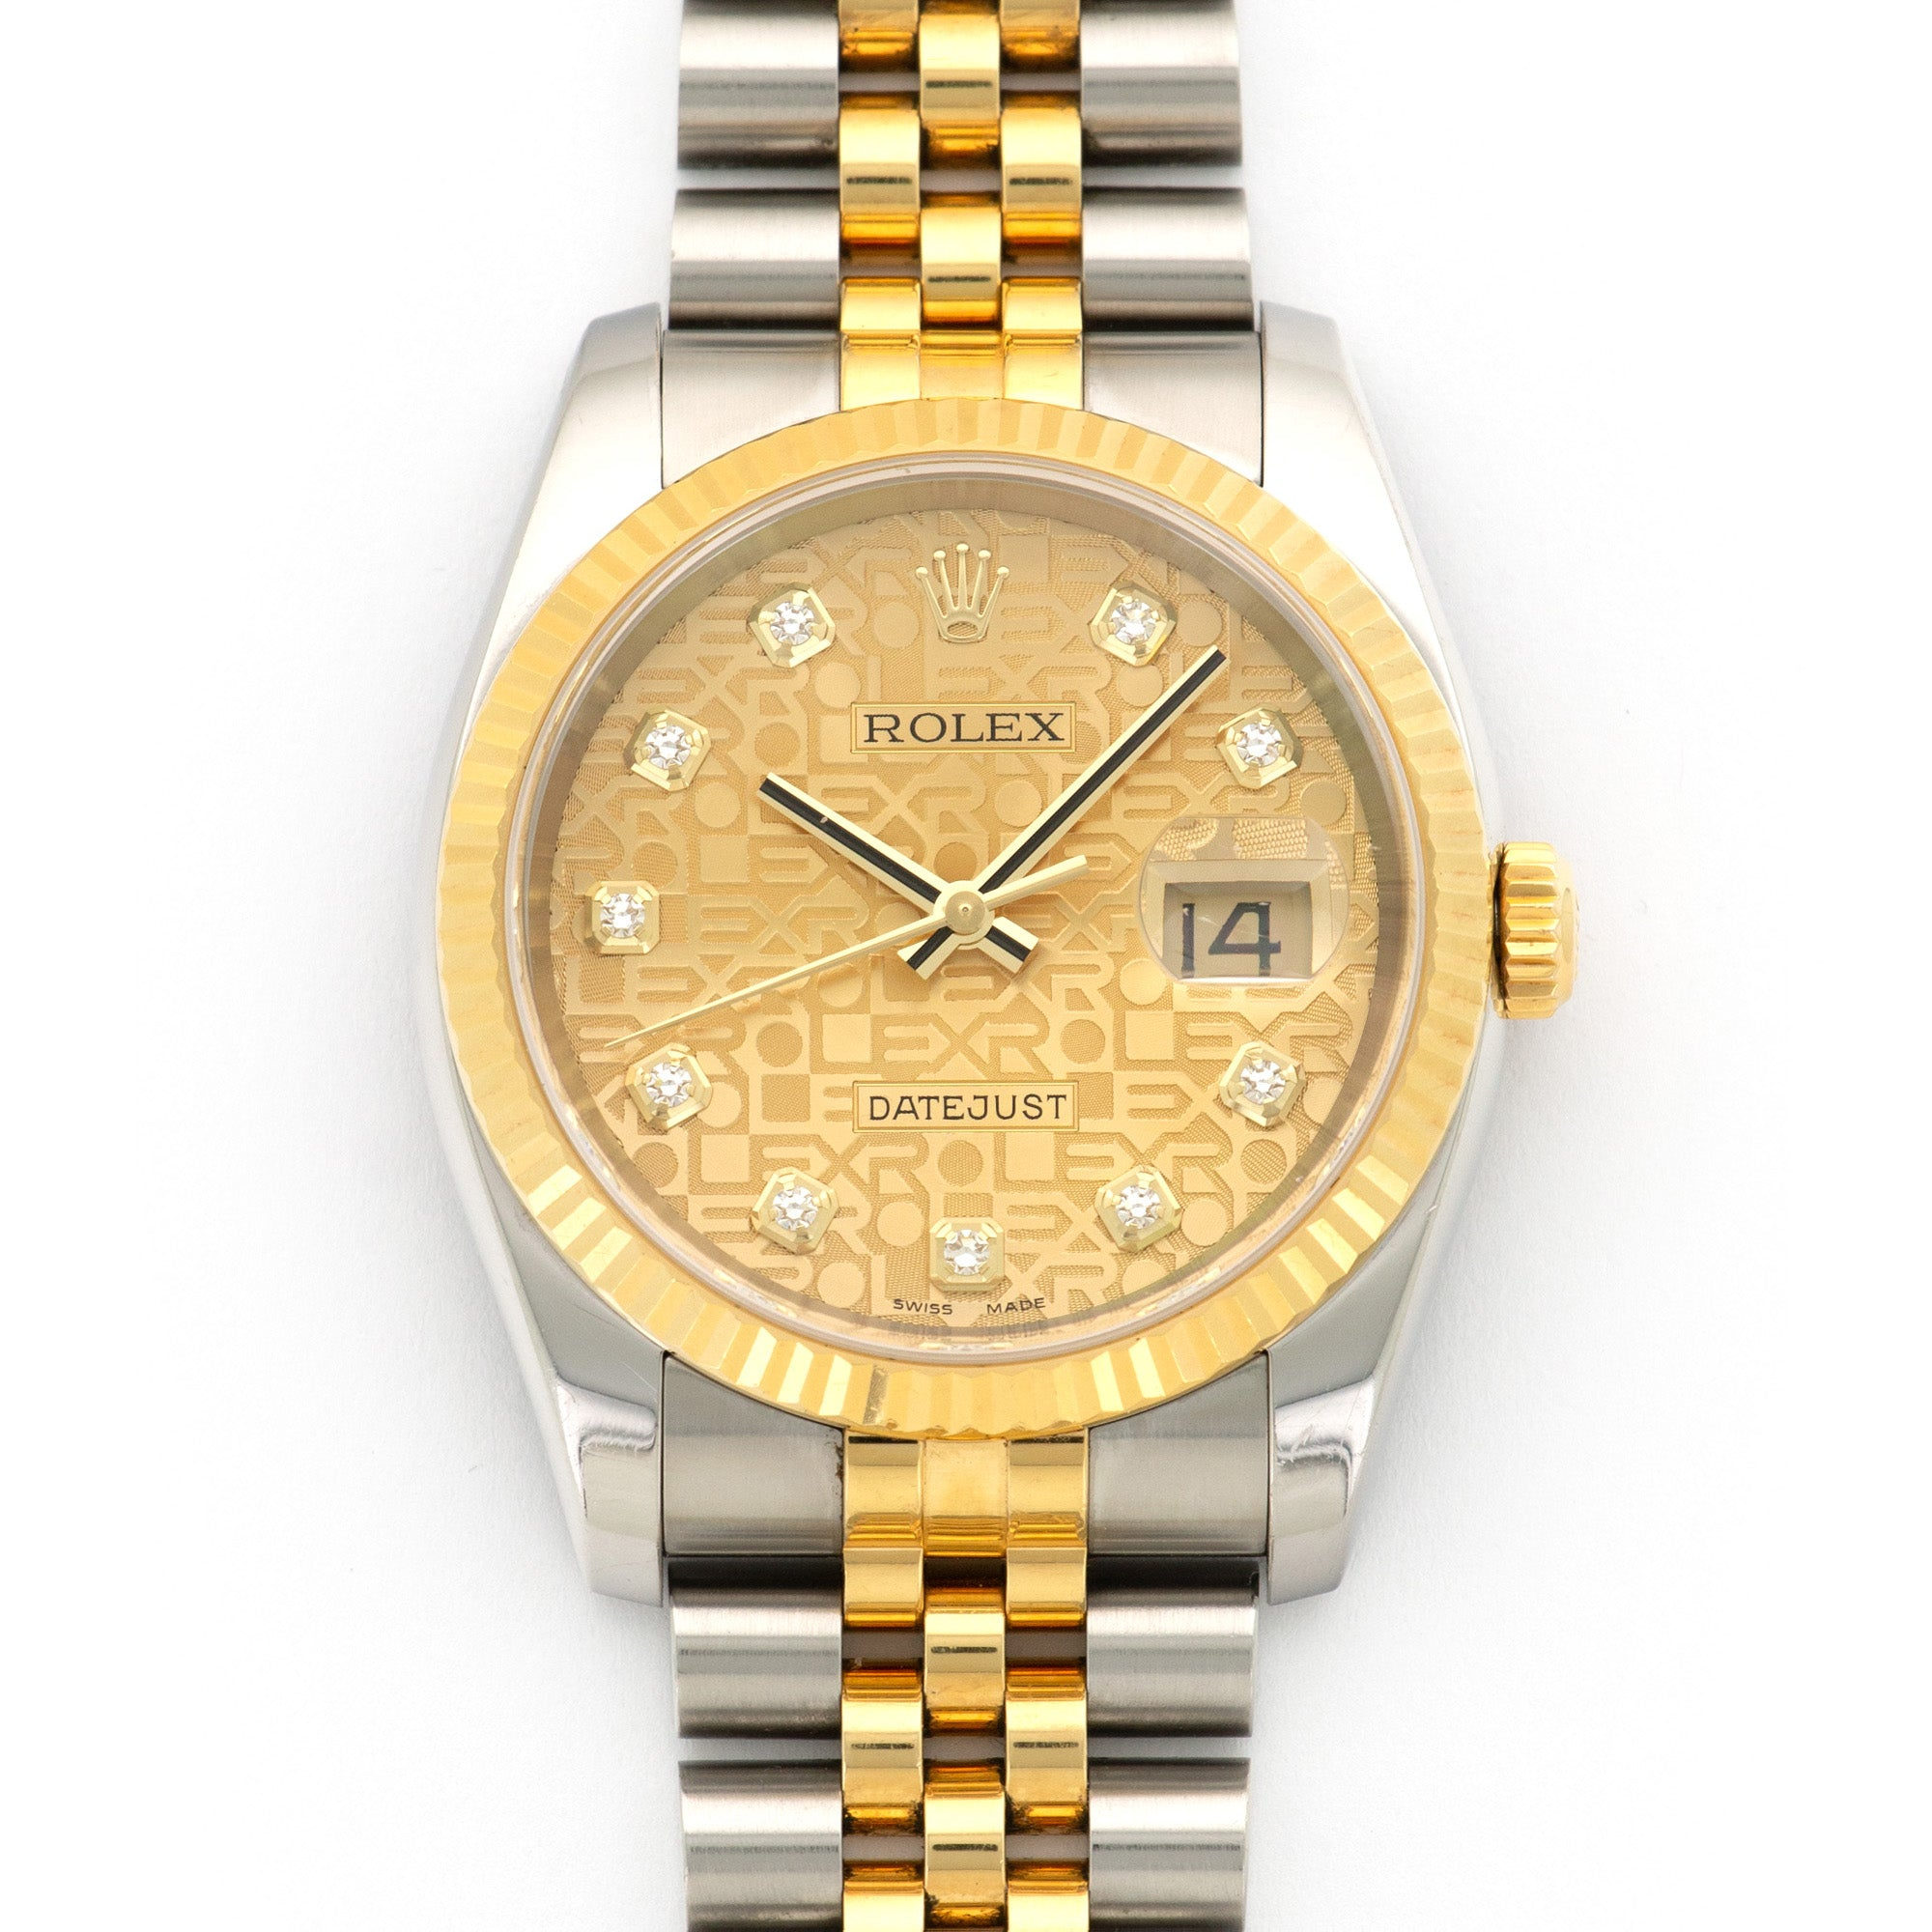 Rolex Datejust 116233 Two-Tone  Excellent Unisex Two-Tone Champagne Jubilee with Diamond Markers 36mm Automatic 2006 Two-Tone Jubilee Bracelet Original Warranty Paper